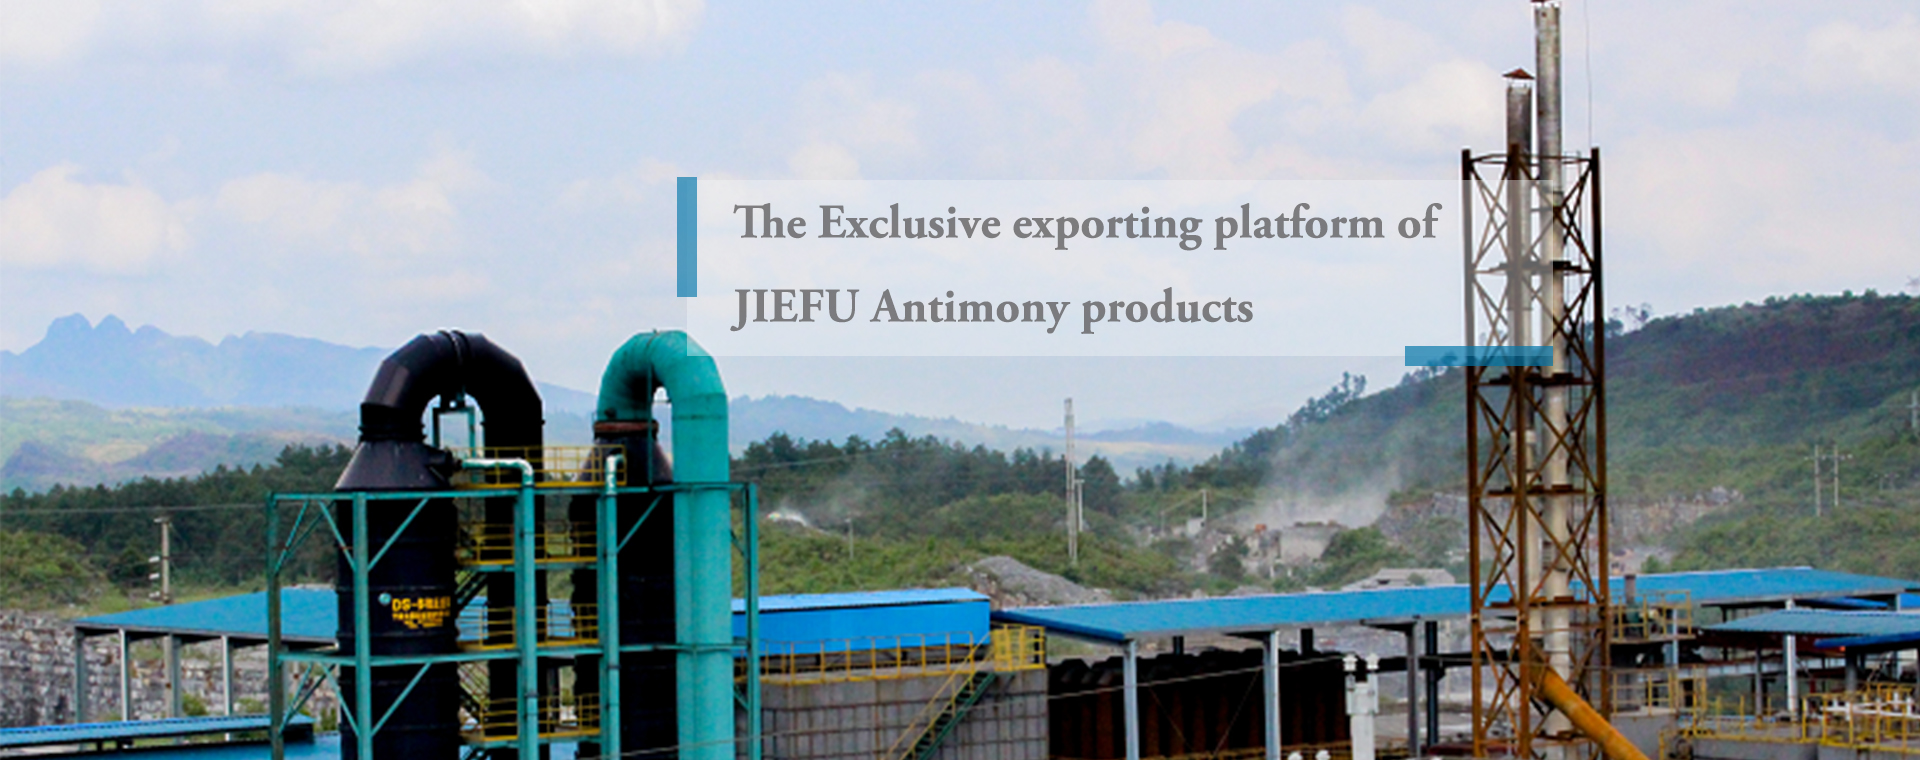 JIEFU Antimony products supplier